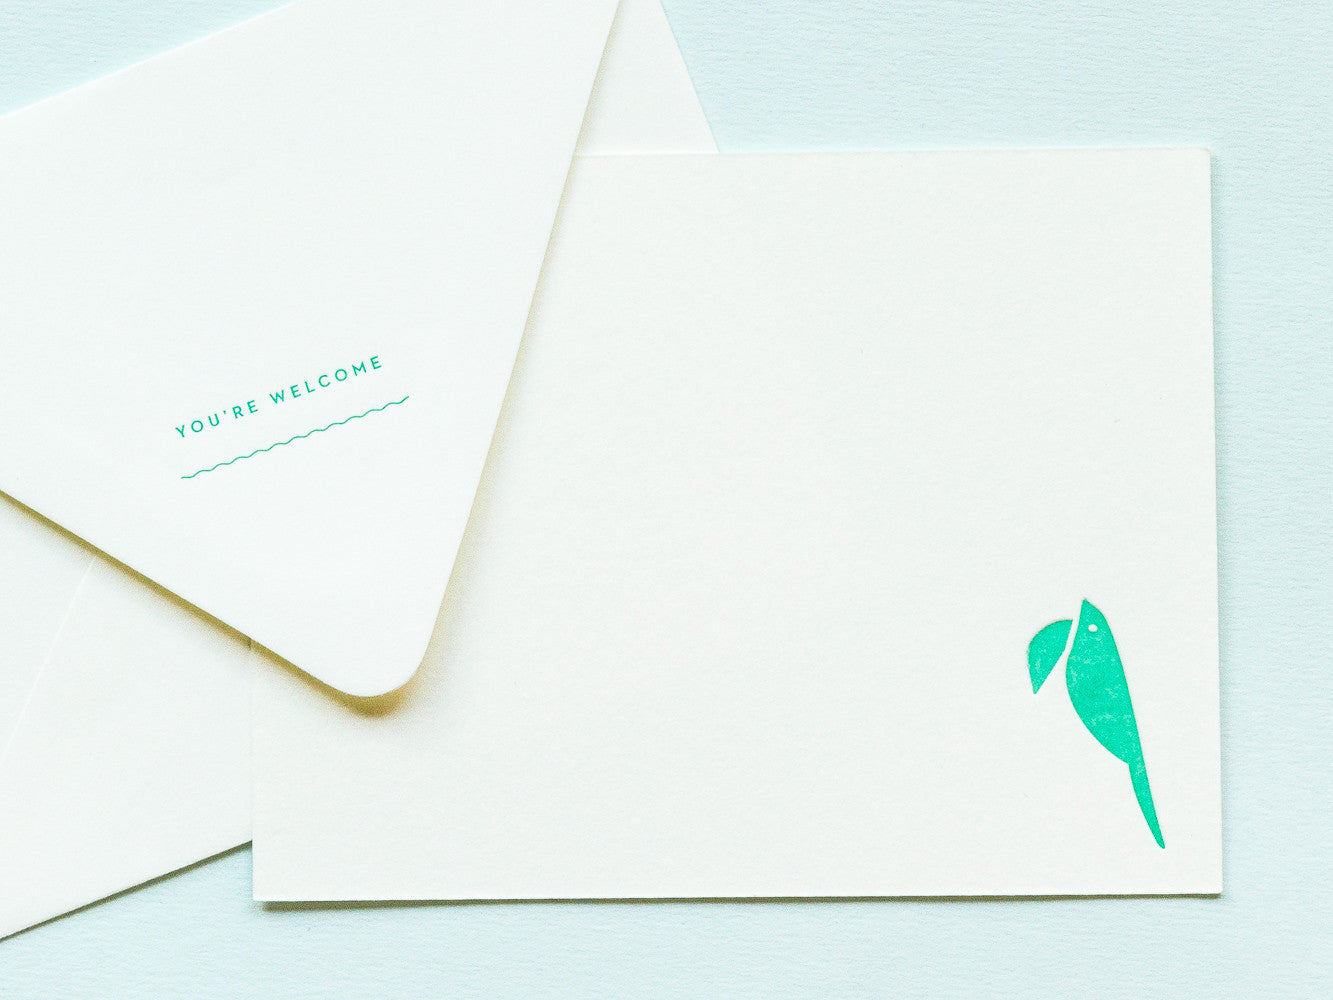 You're Welcome Notevelope & Toucan Notecard